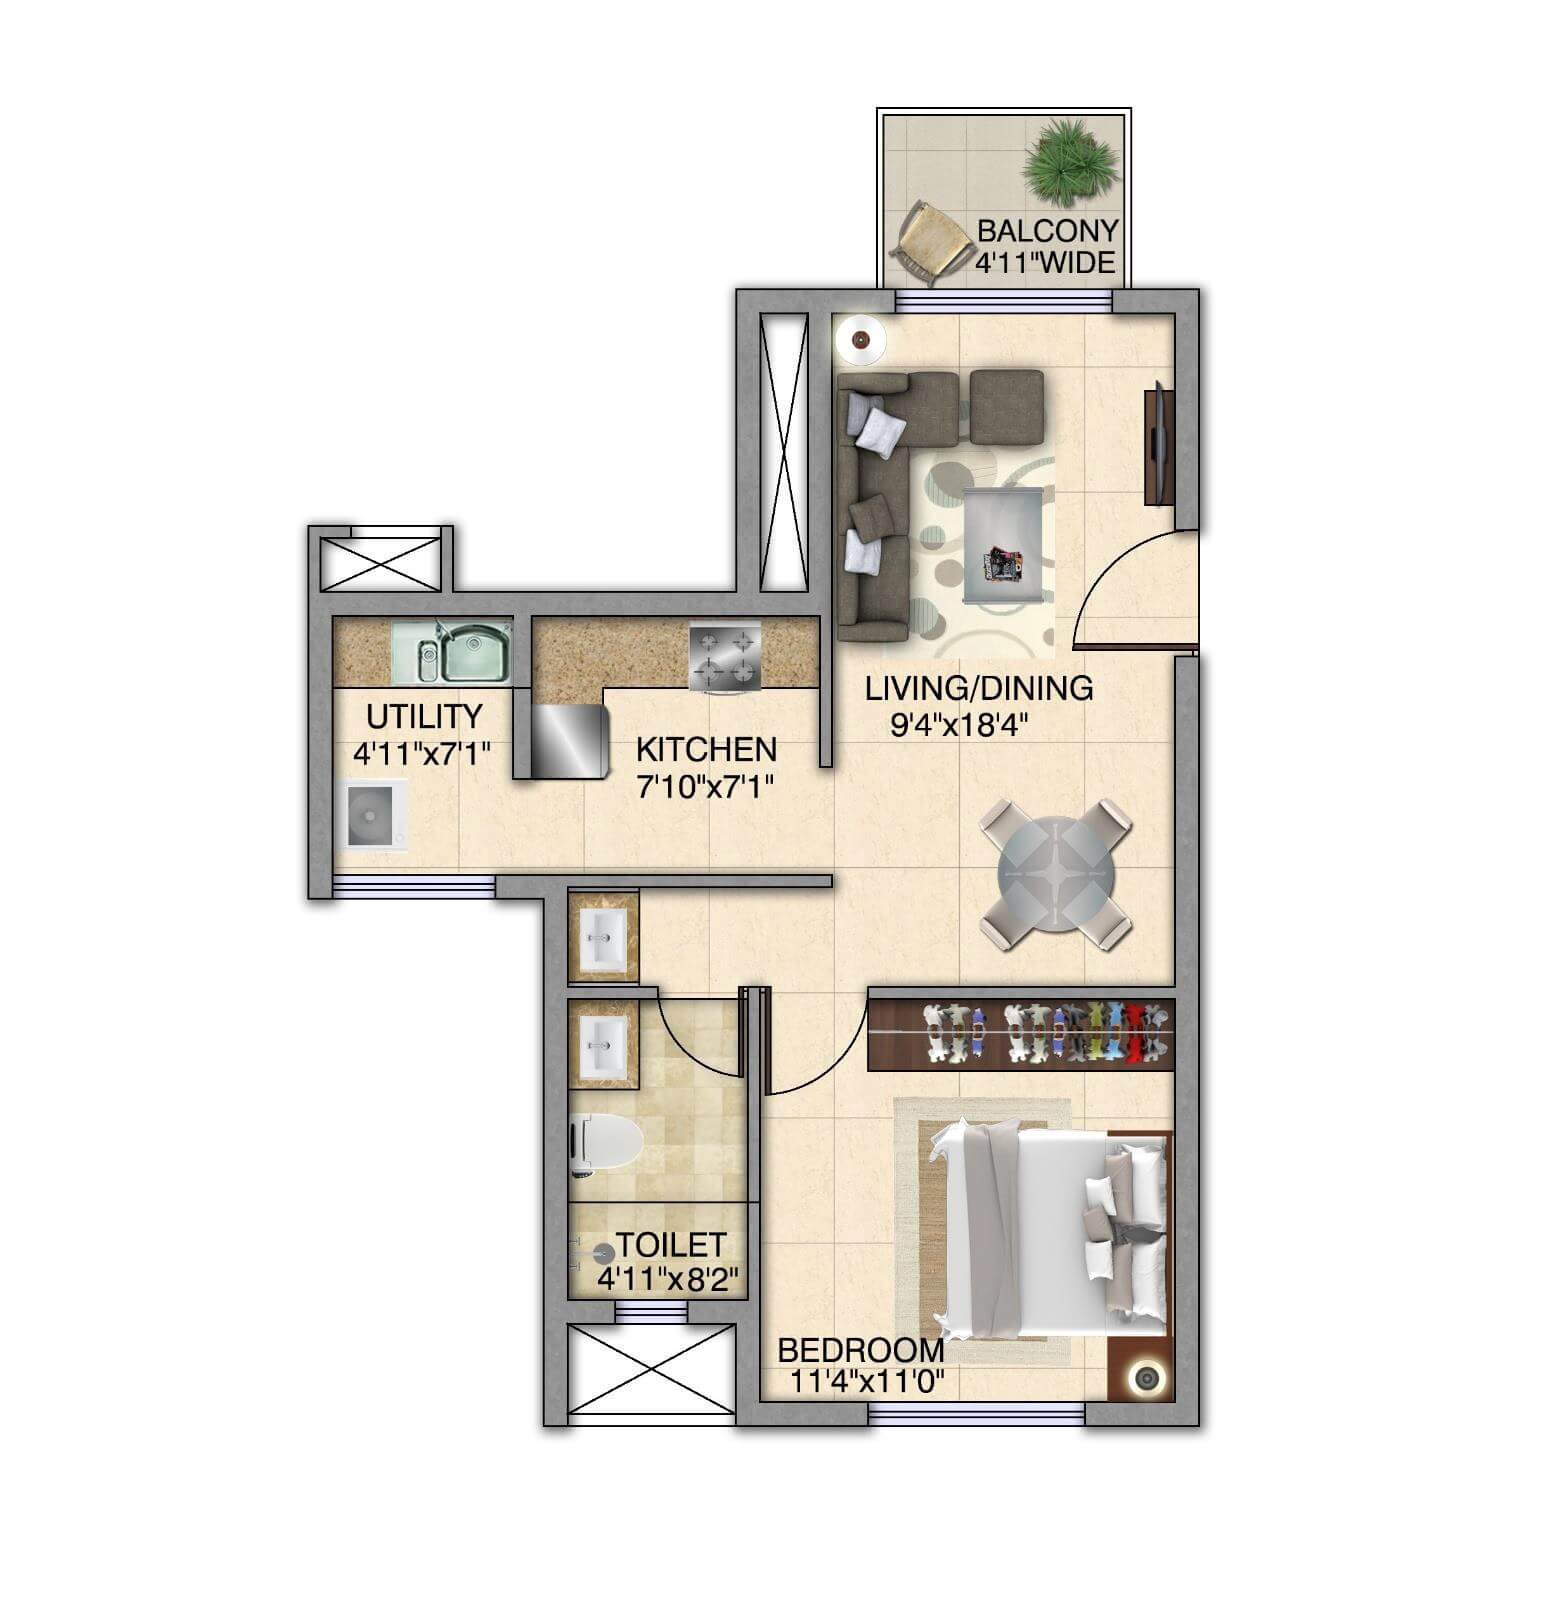 kolte patil itowers exente apartment 1bhk 715sqft 1